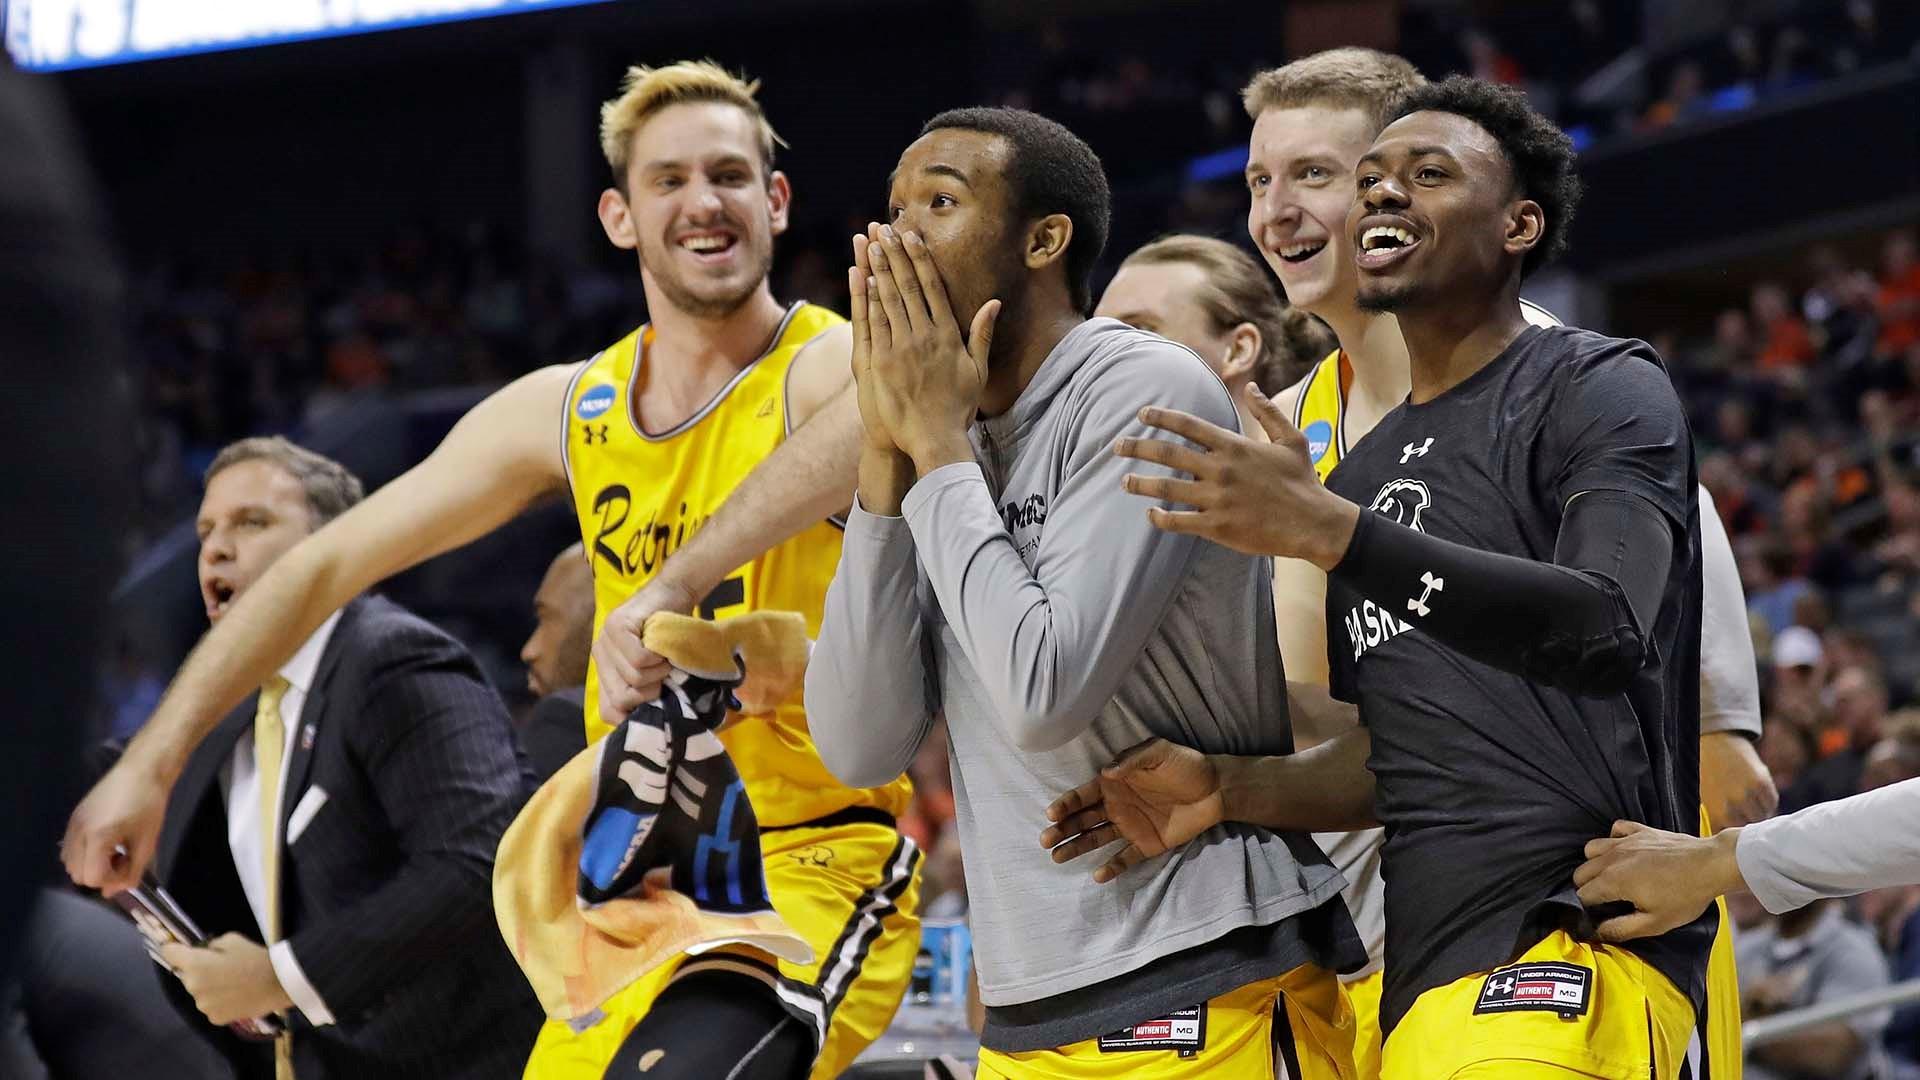 Biggest upsets in March Madness history